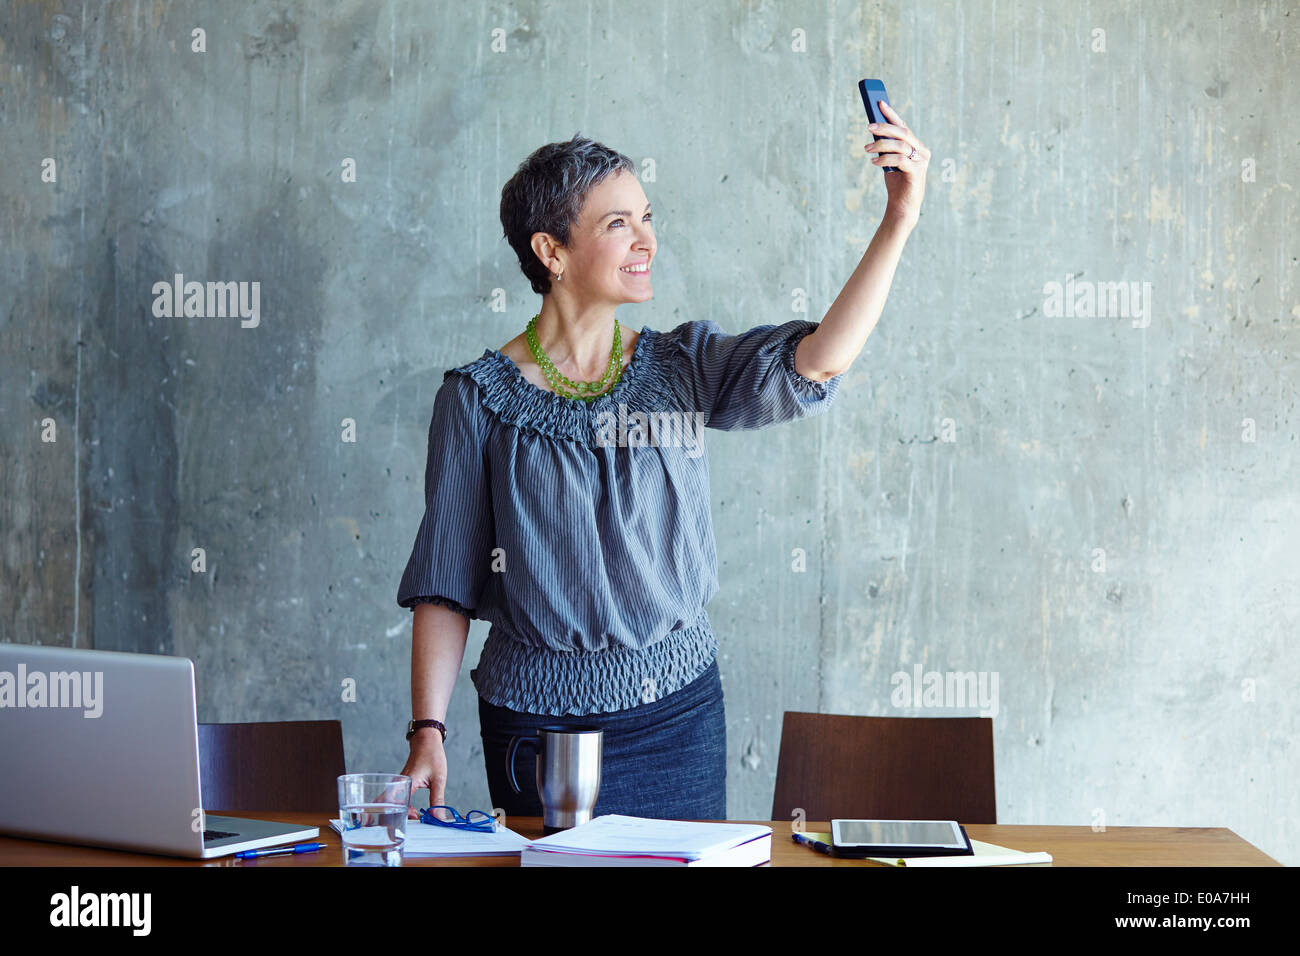 Mature businesswoman taking self portrait in office - Stock Image